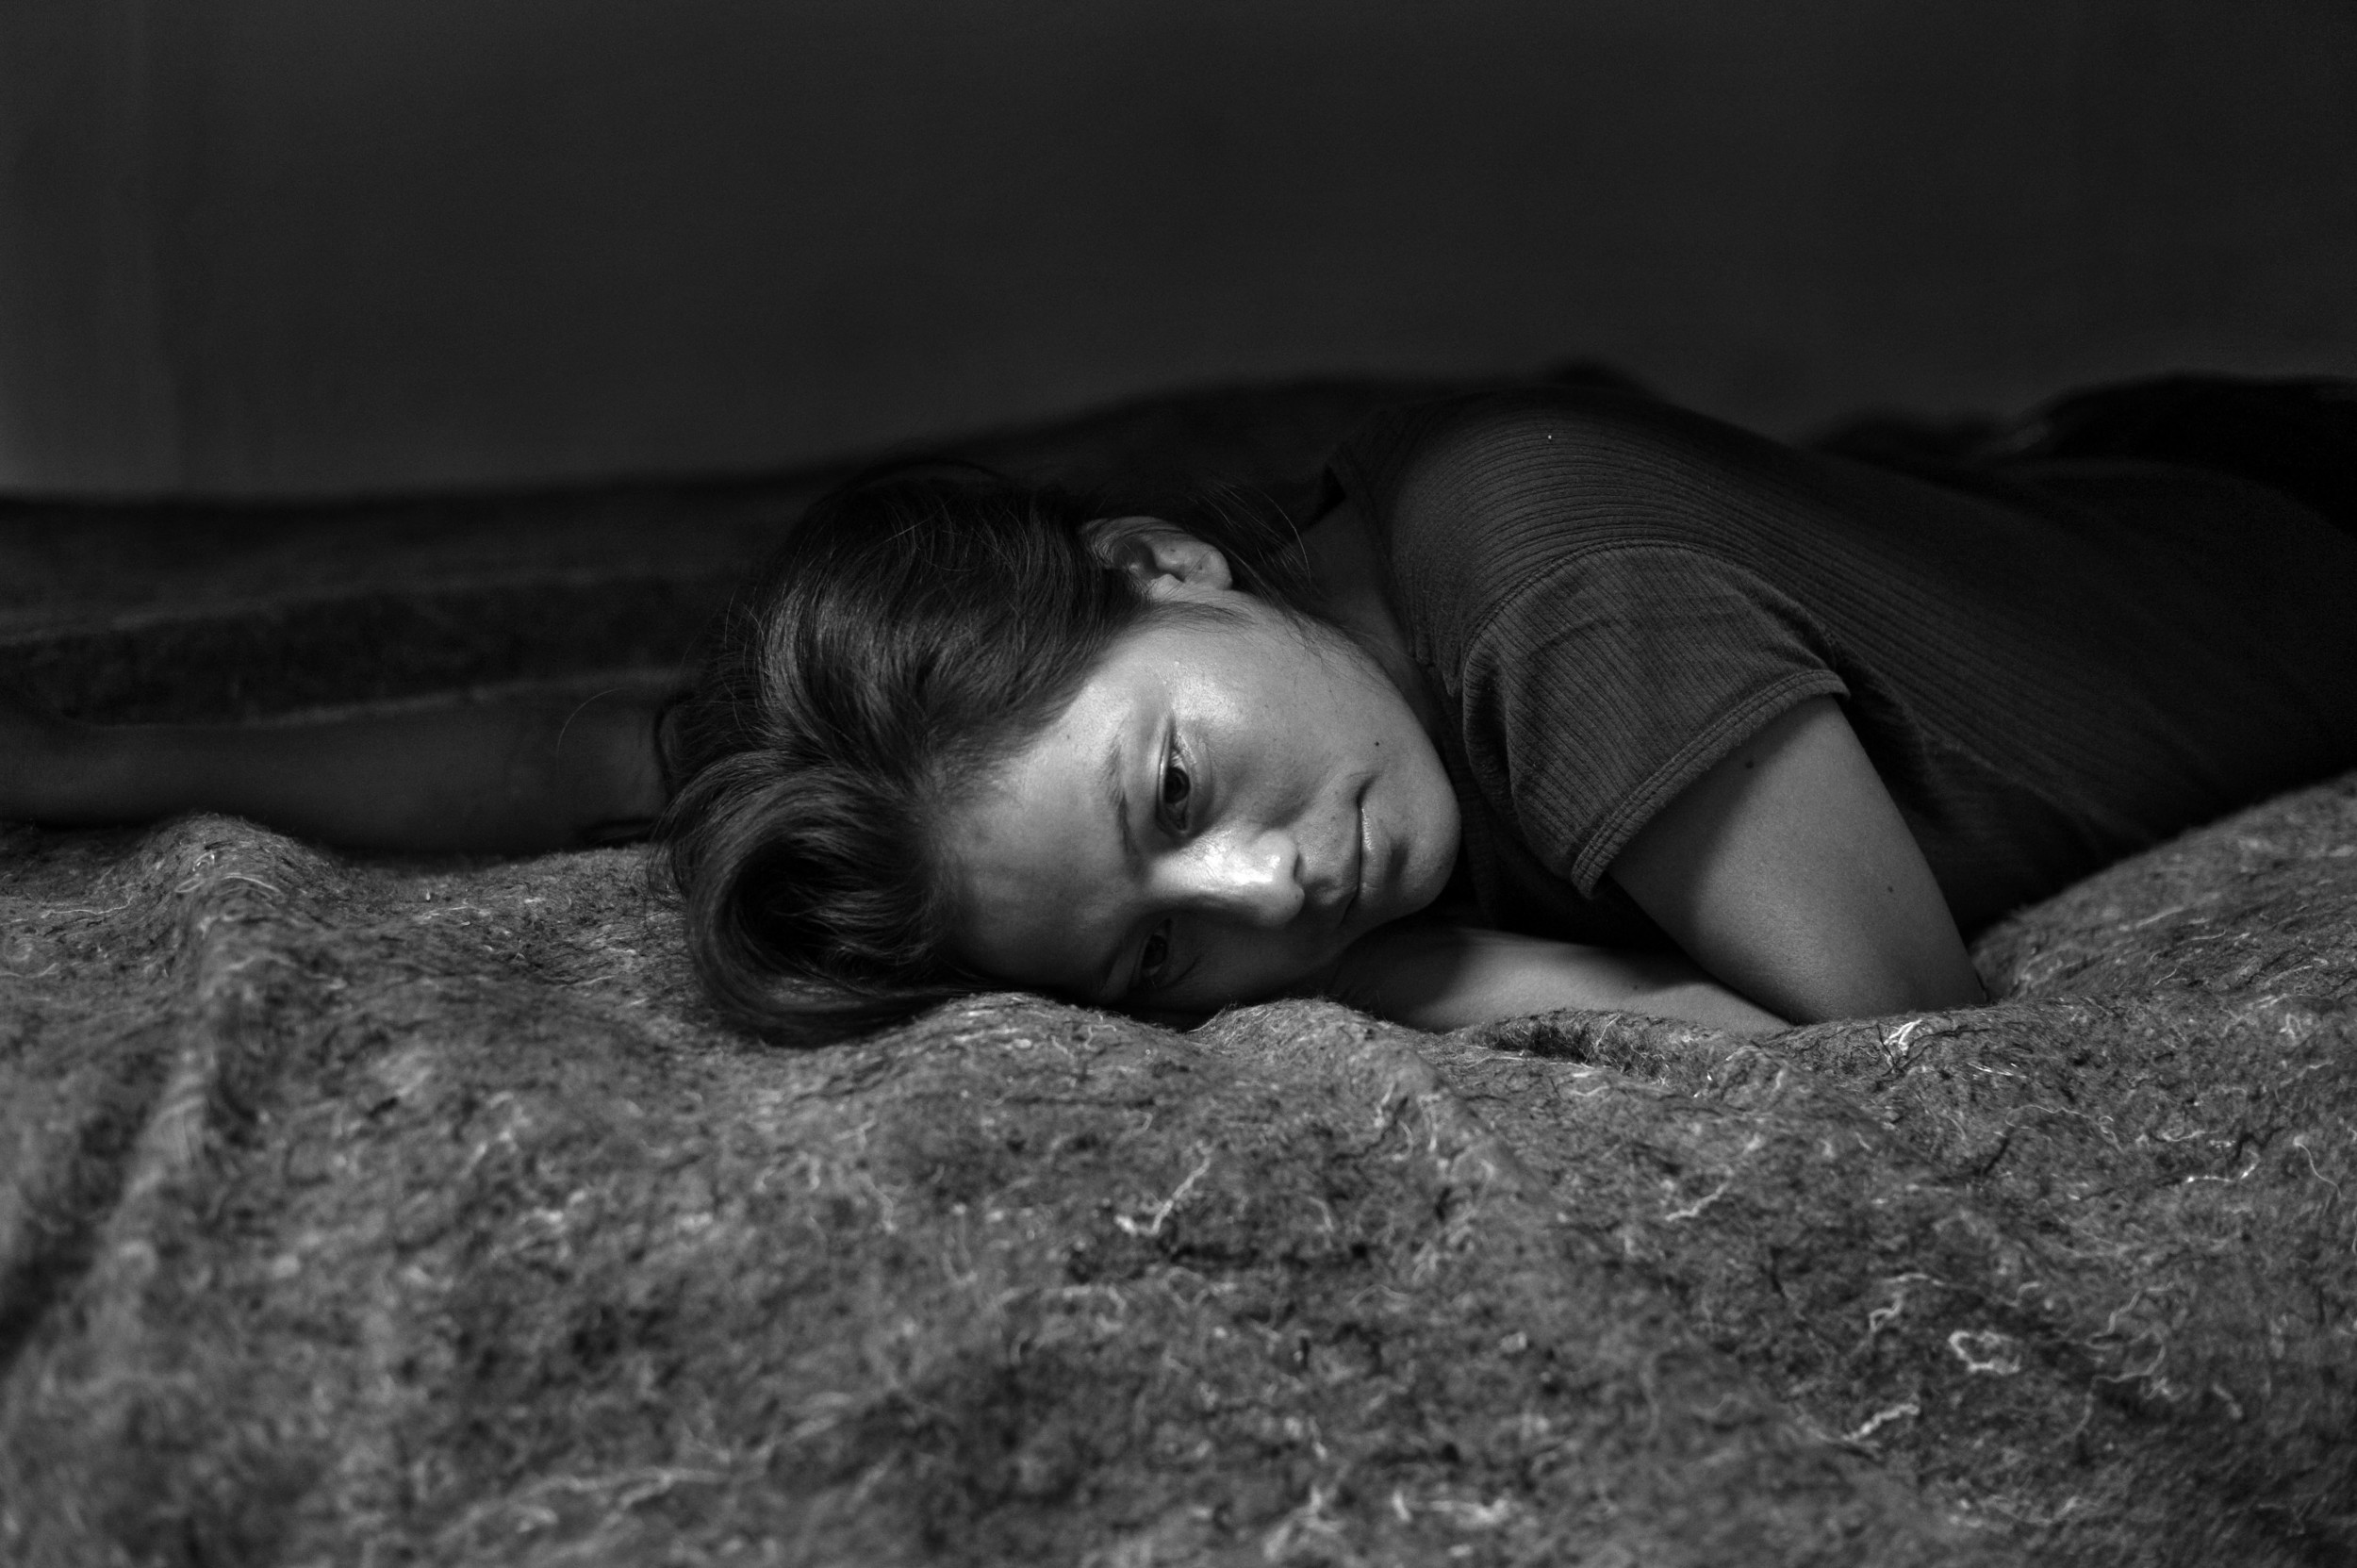 MARISOL ESPINOZA, a 20-year-old woman from Chiapas, Mexico rests in a shelter for deportees and migrants the night after she was deported from the US. She crossed into the United States and walked through the Arizona desert for 6-days until she was arrested by the U.S. Border Patrol.July 28, 2012 ©Louie Palu/ZUMAPRESS.com